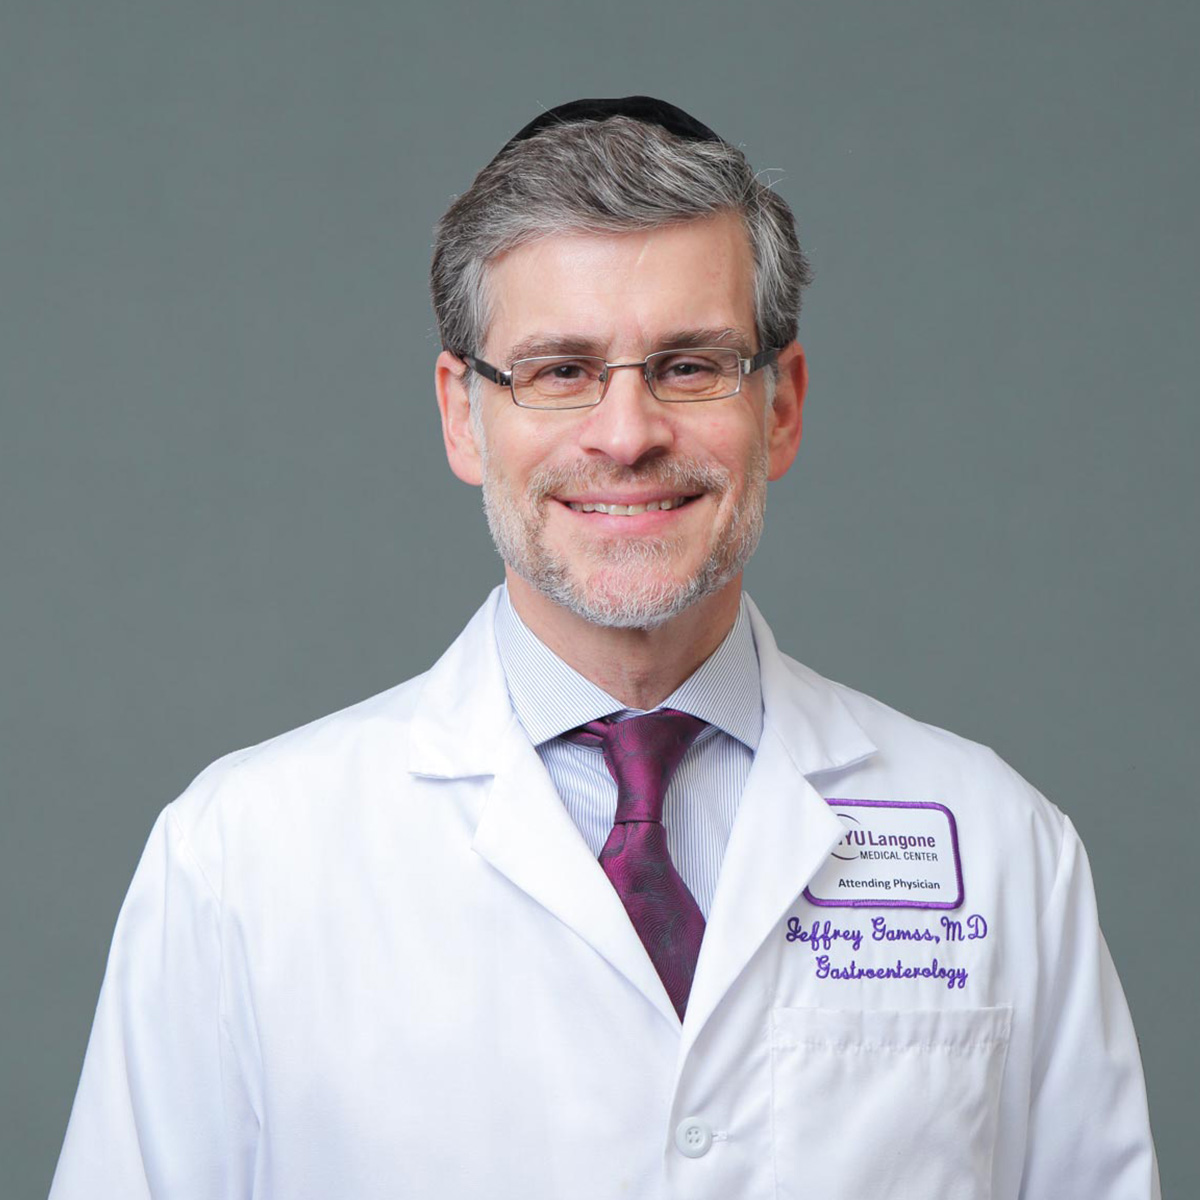 Jeffrey Gamss,MD. Gastroenterology